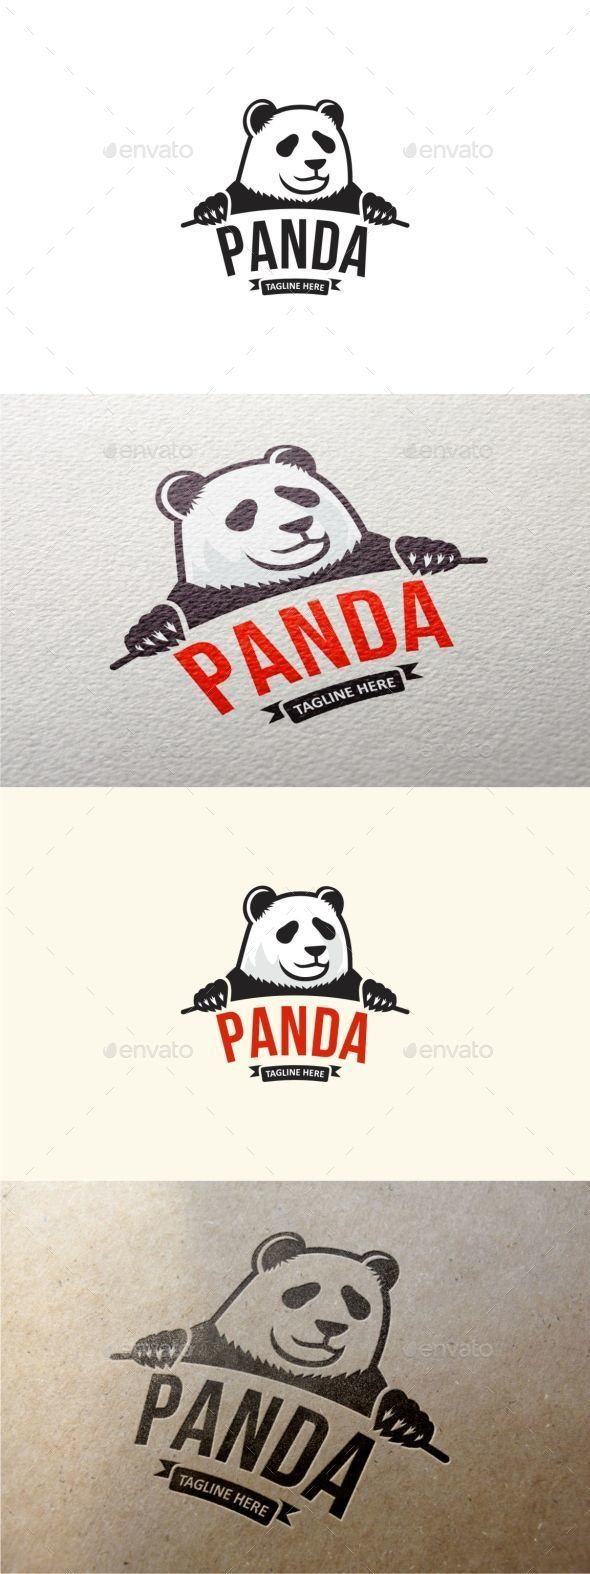 Panda Logo Template — Vector EPS #wild #design • Available here → https://graphicriver.net/item/panda-logo-template/14860493?ref=pxcr